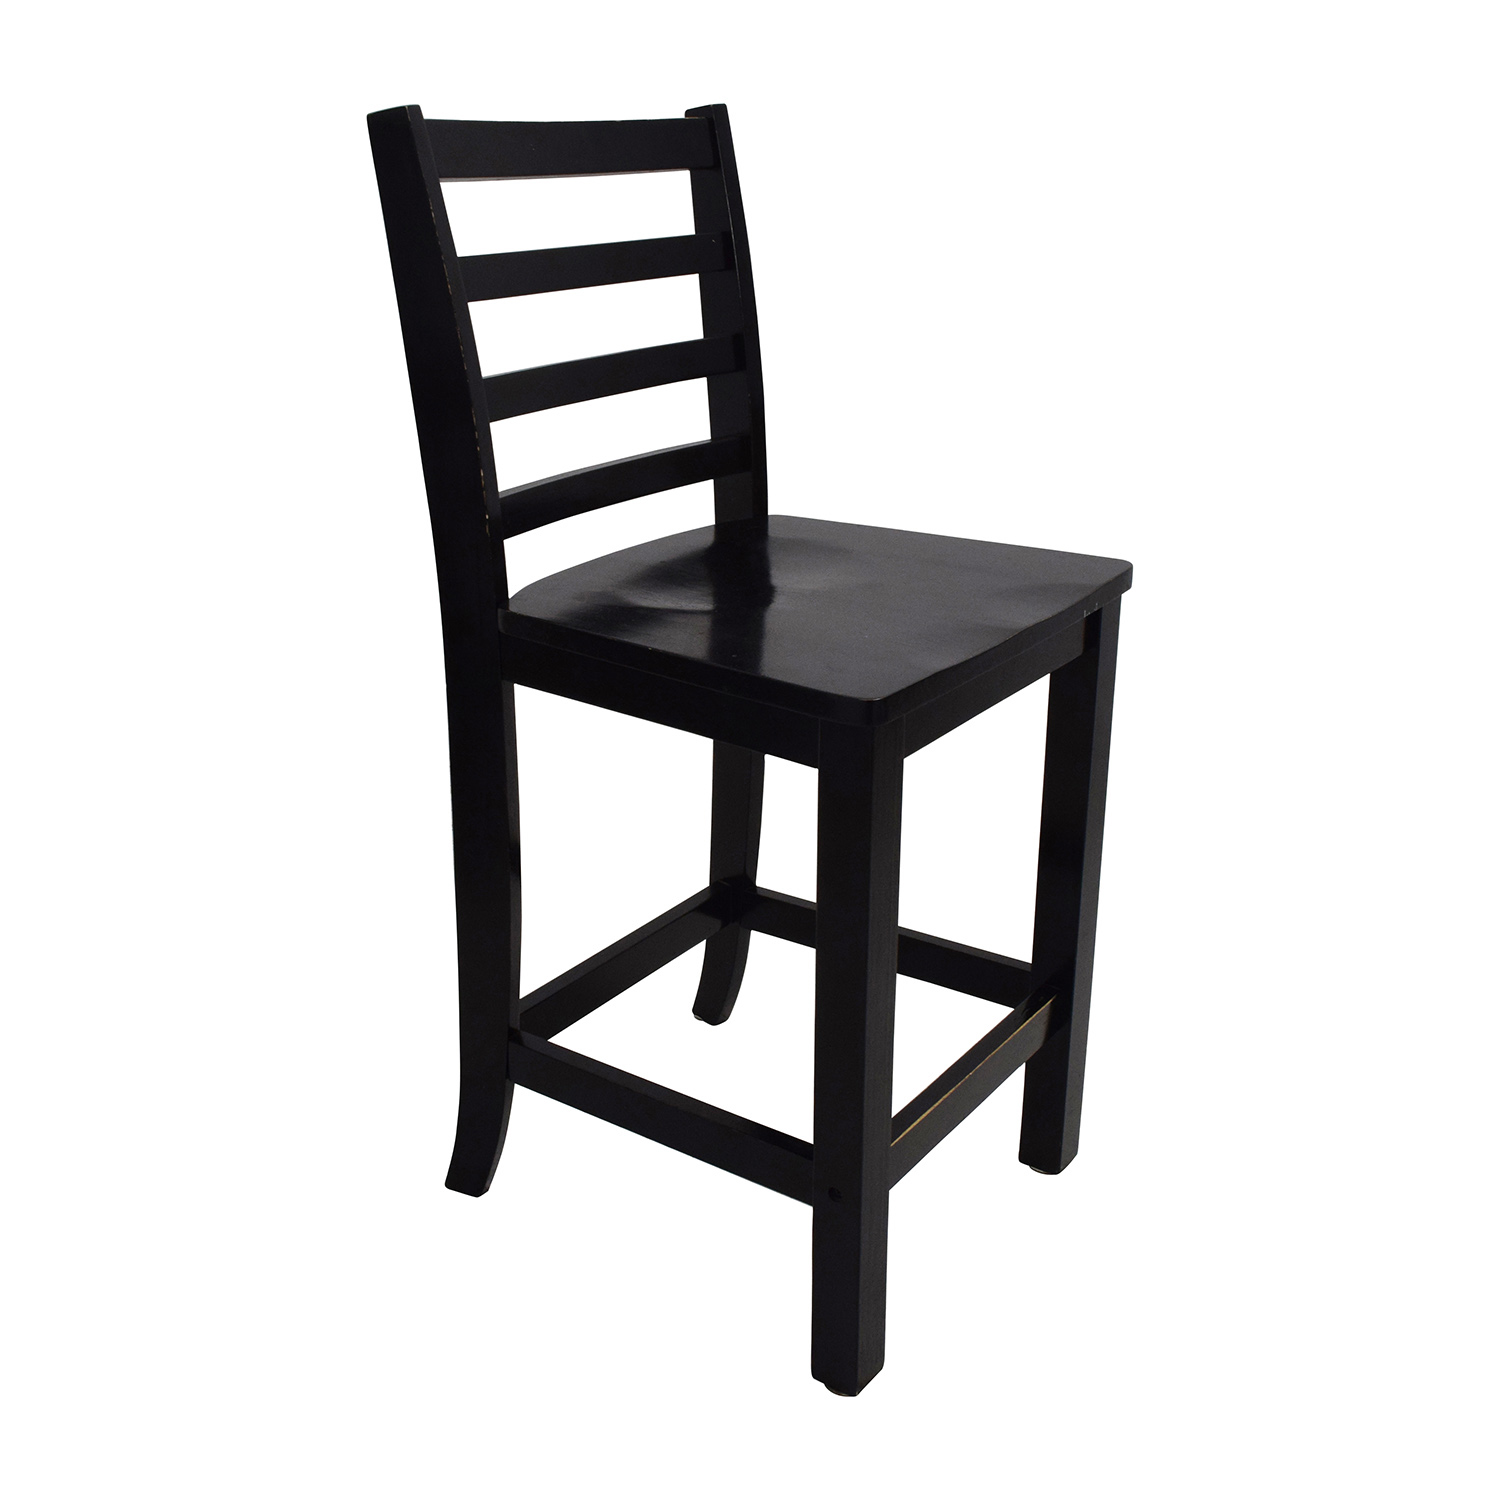 59 Off Counter Black Round Table With Chairs And Stool